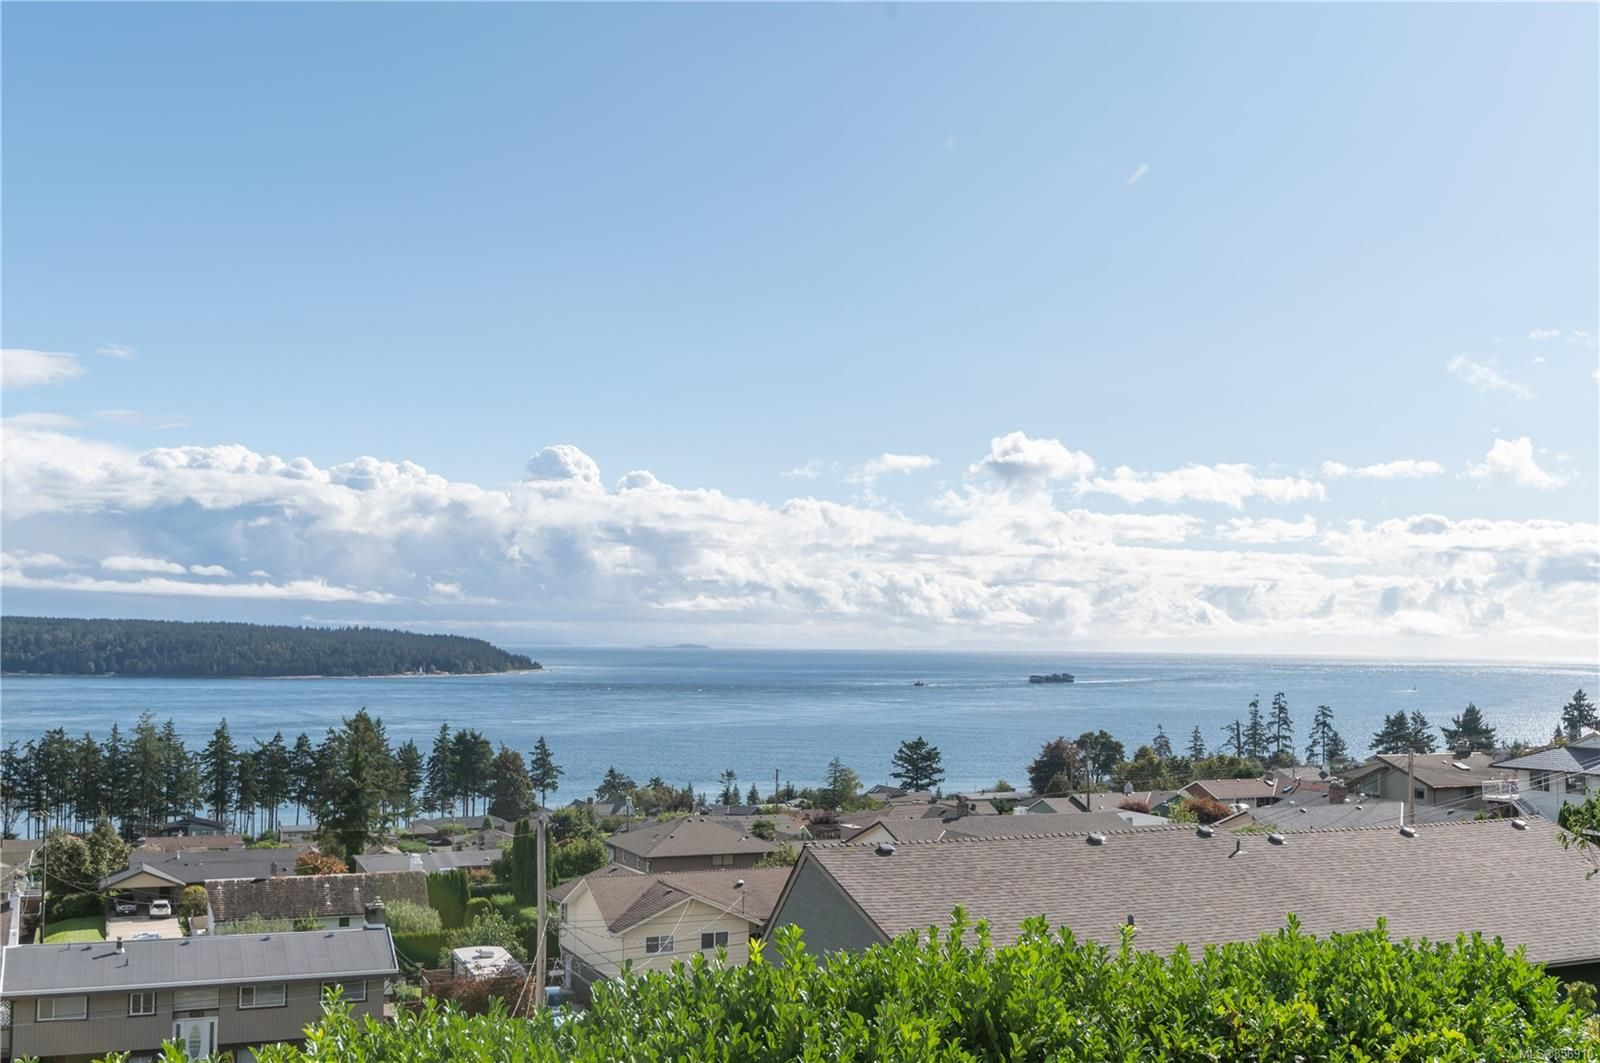 Photo 4: Photos: 215 S Alder St in : CR Campbell River Central House for sale (Campbell River)  : MLS®# 856910